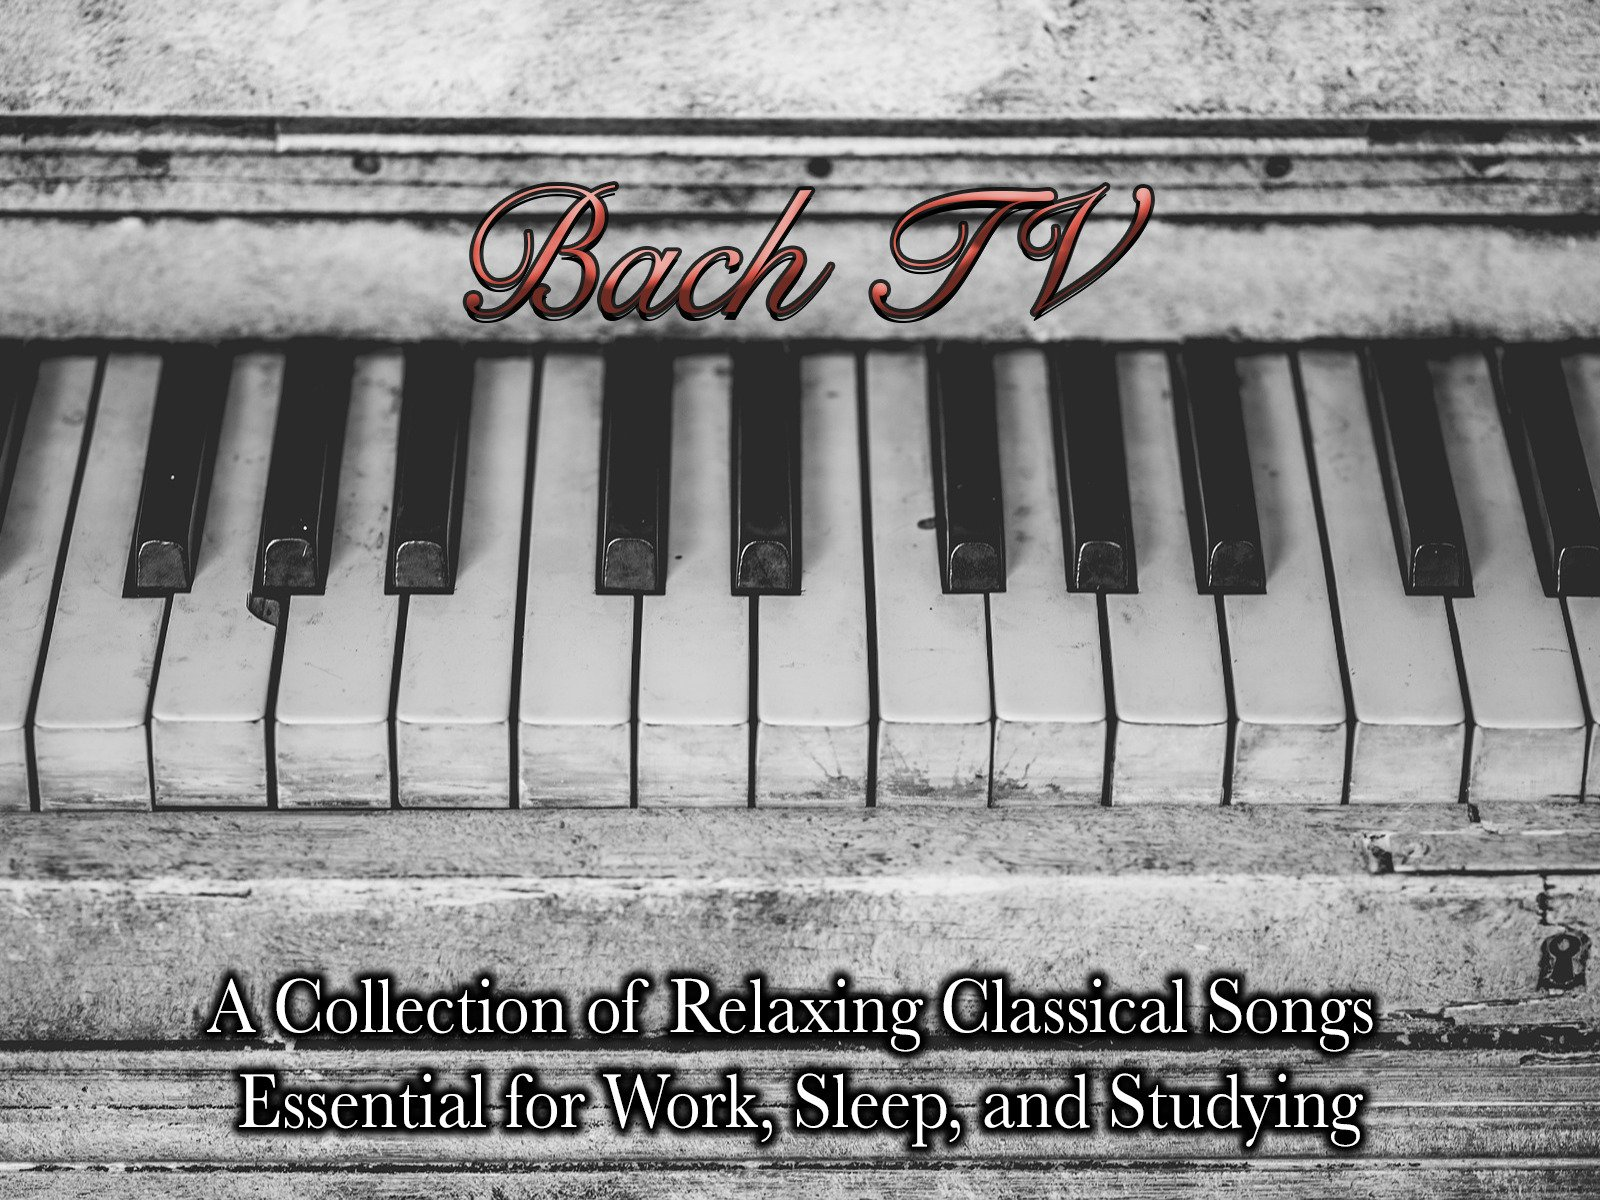 Bach TV A Collection of Relaxing Classical Songs Essential for Work, Sleep, and Studying - Season 1